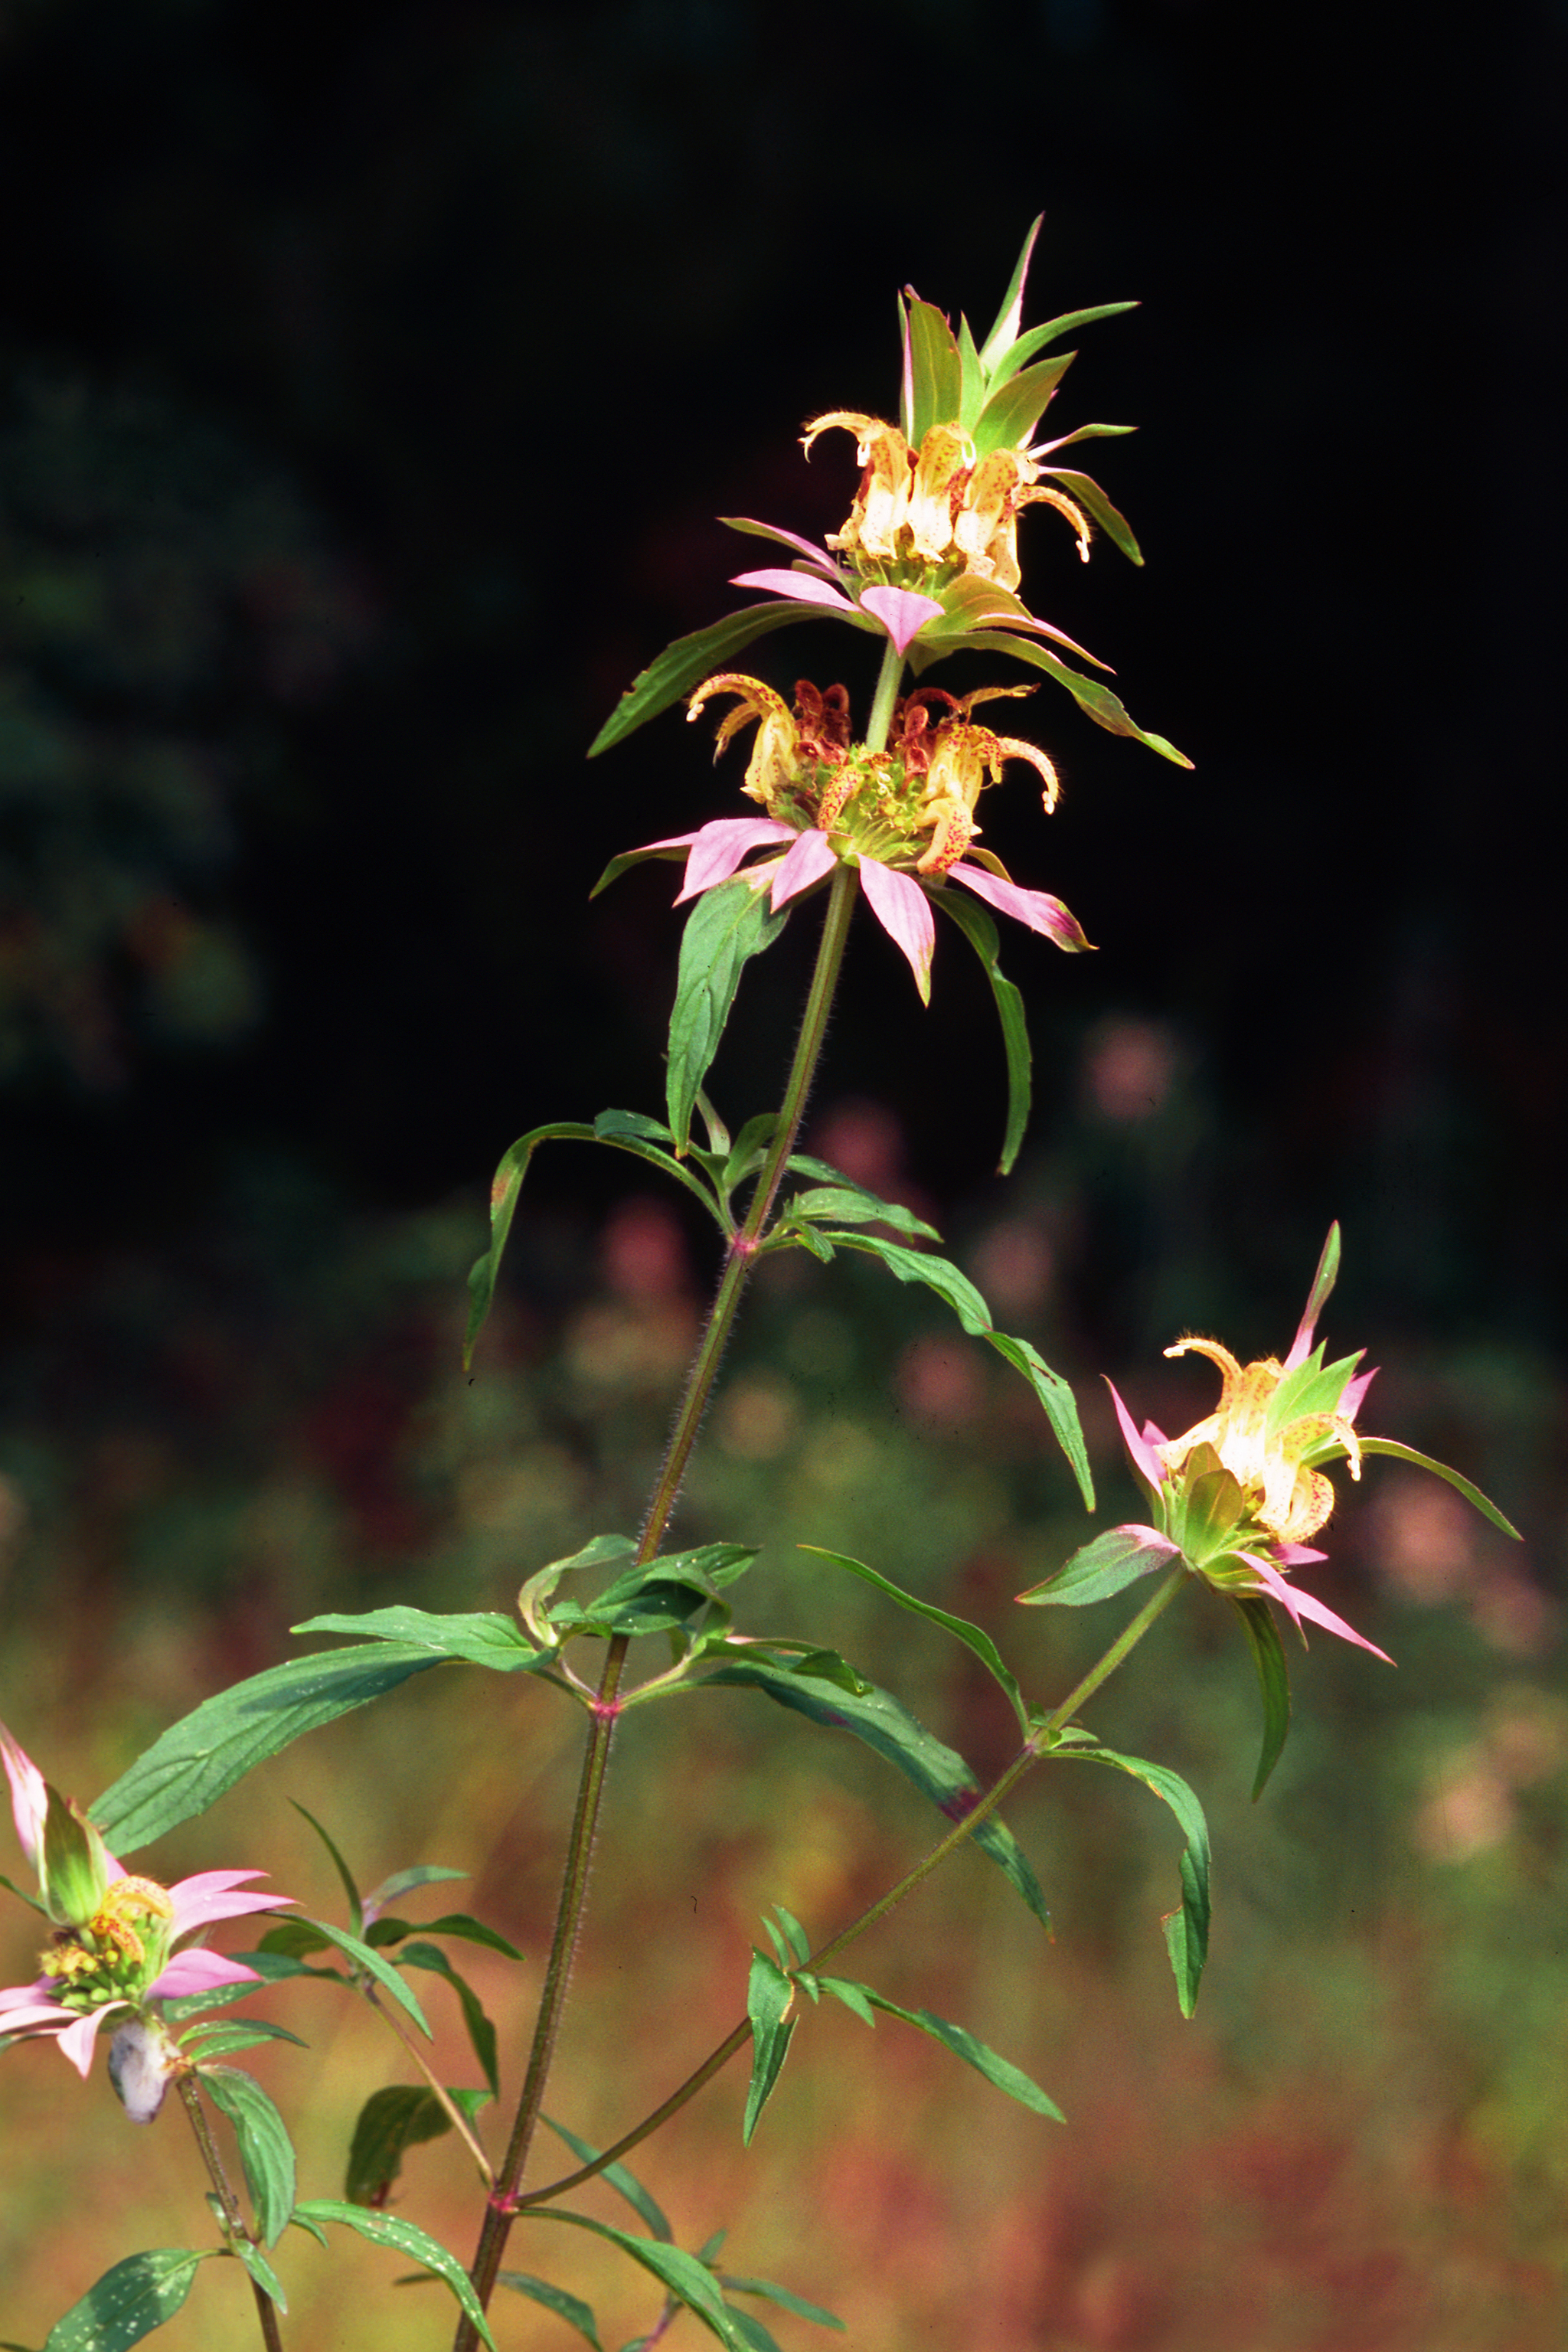 Image of spotted horsemint